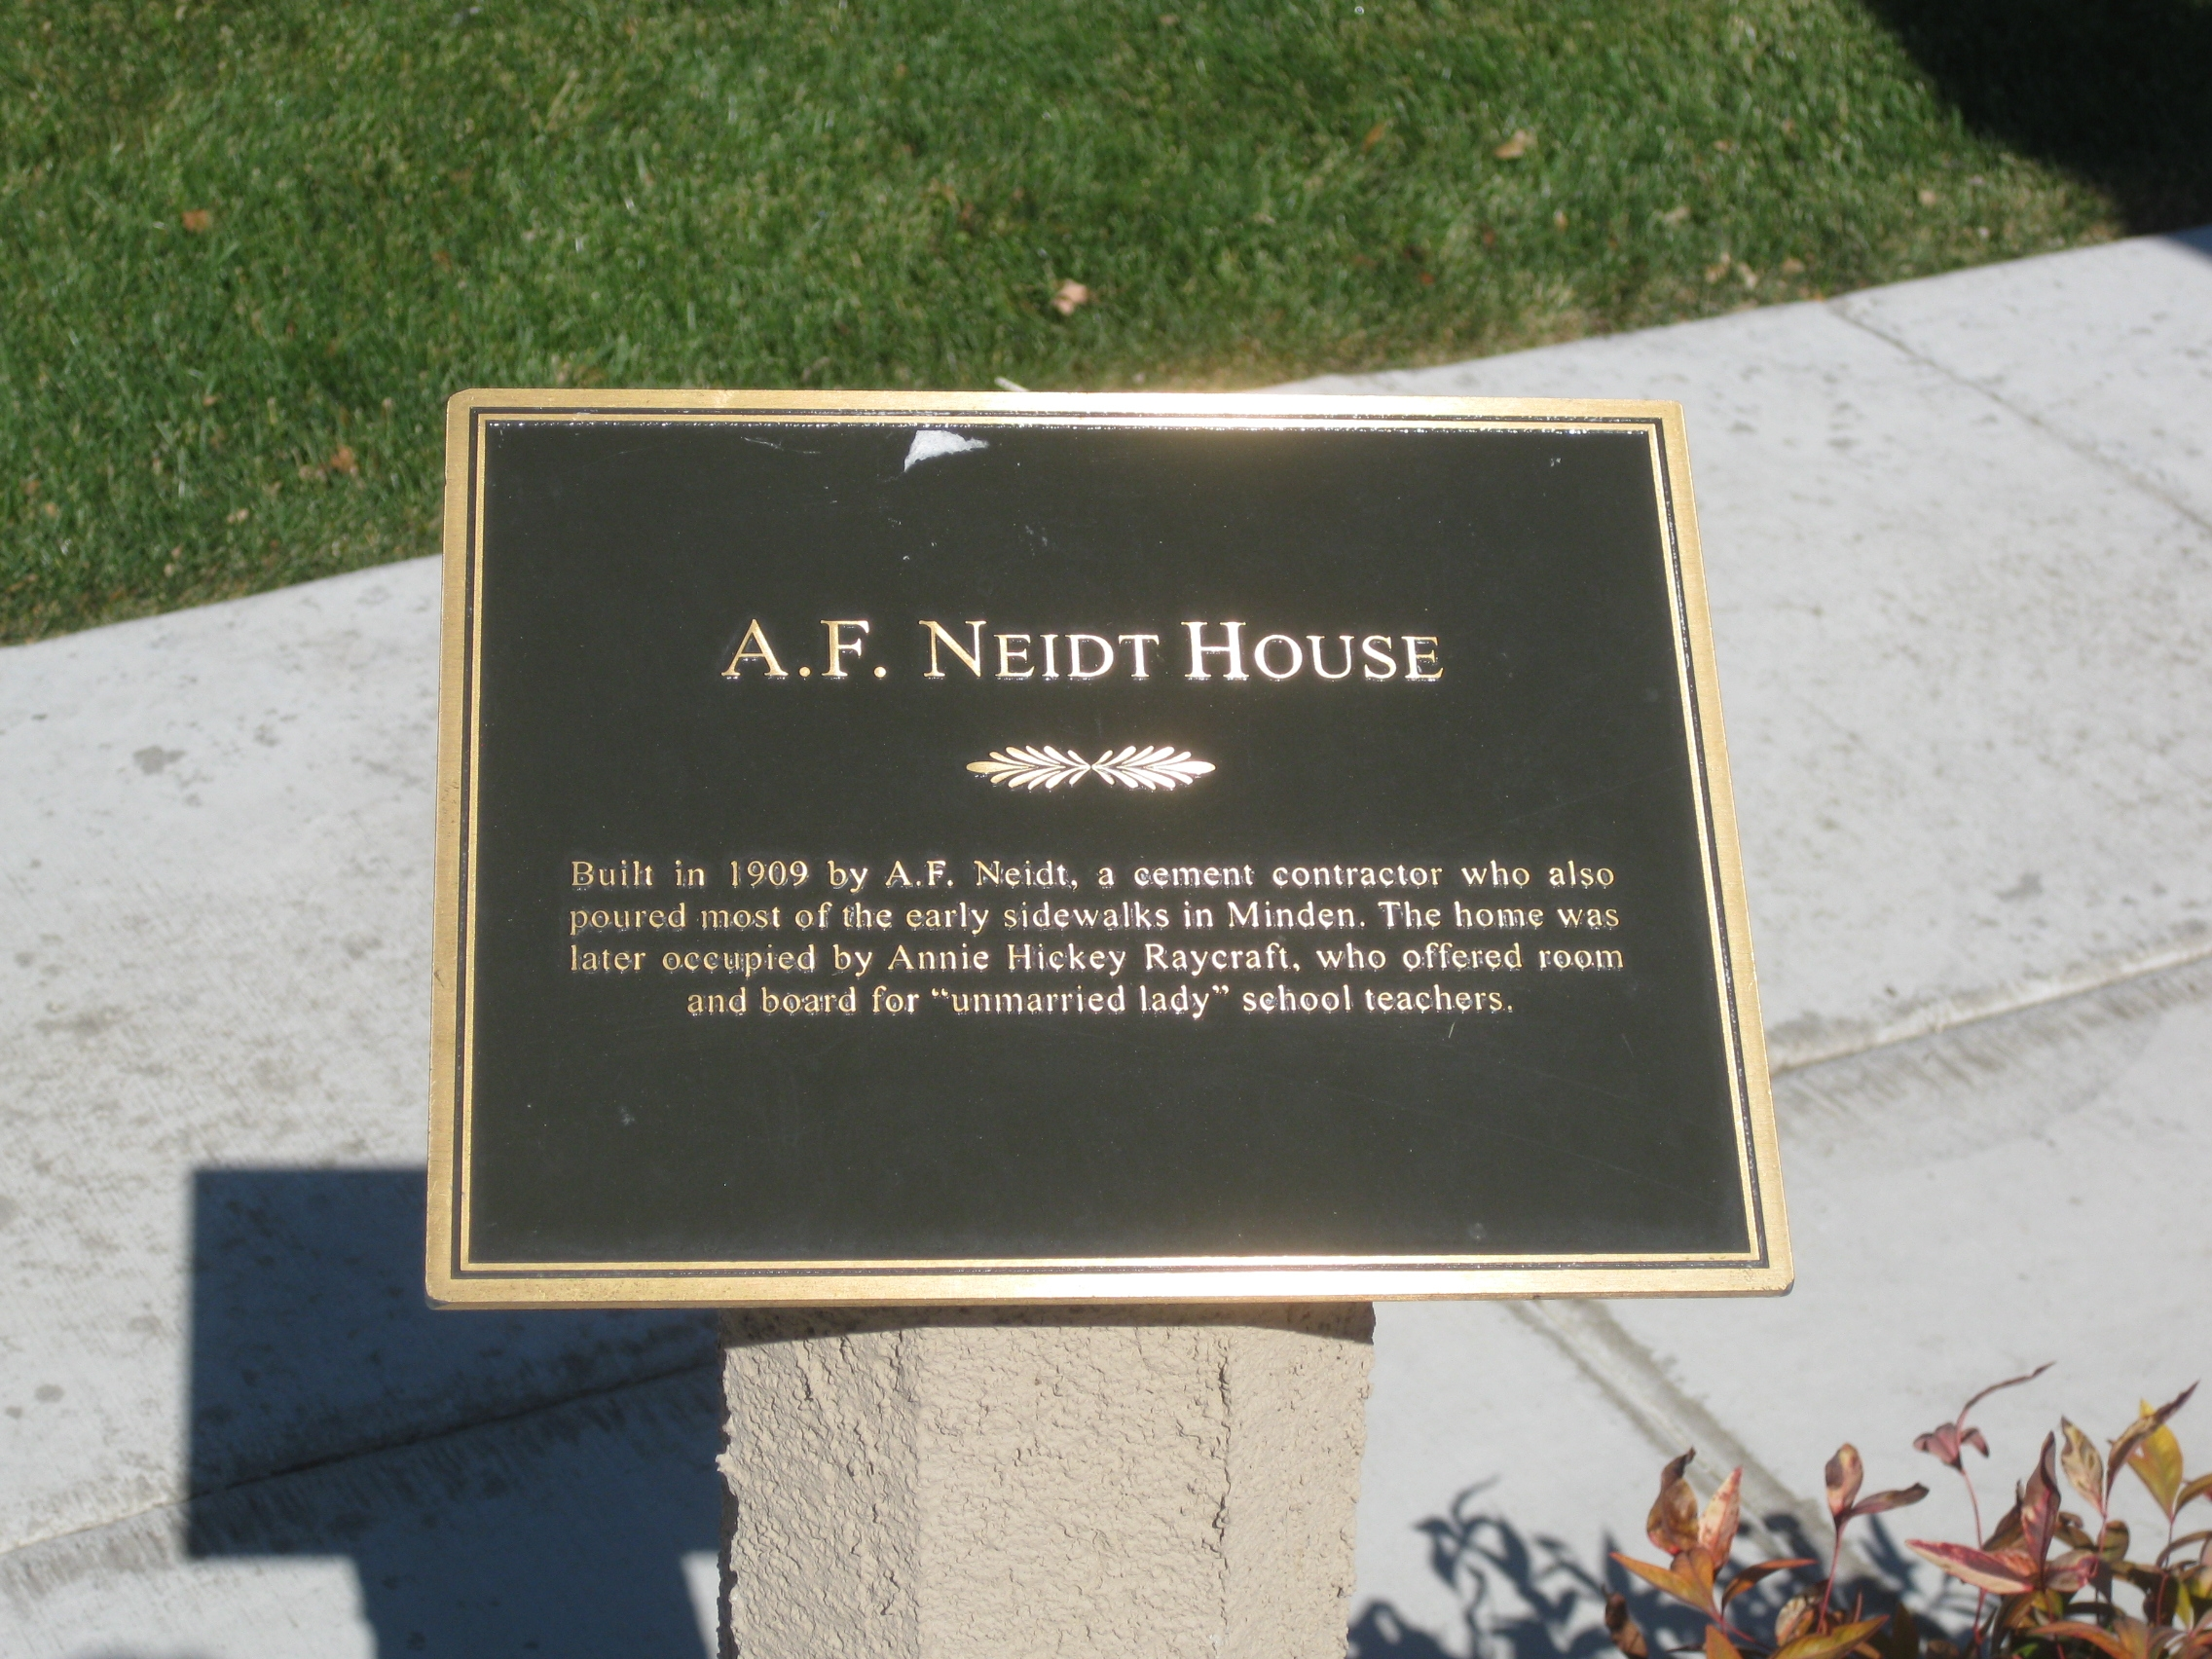 A. F. Neidt House Marker